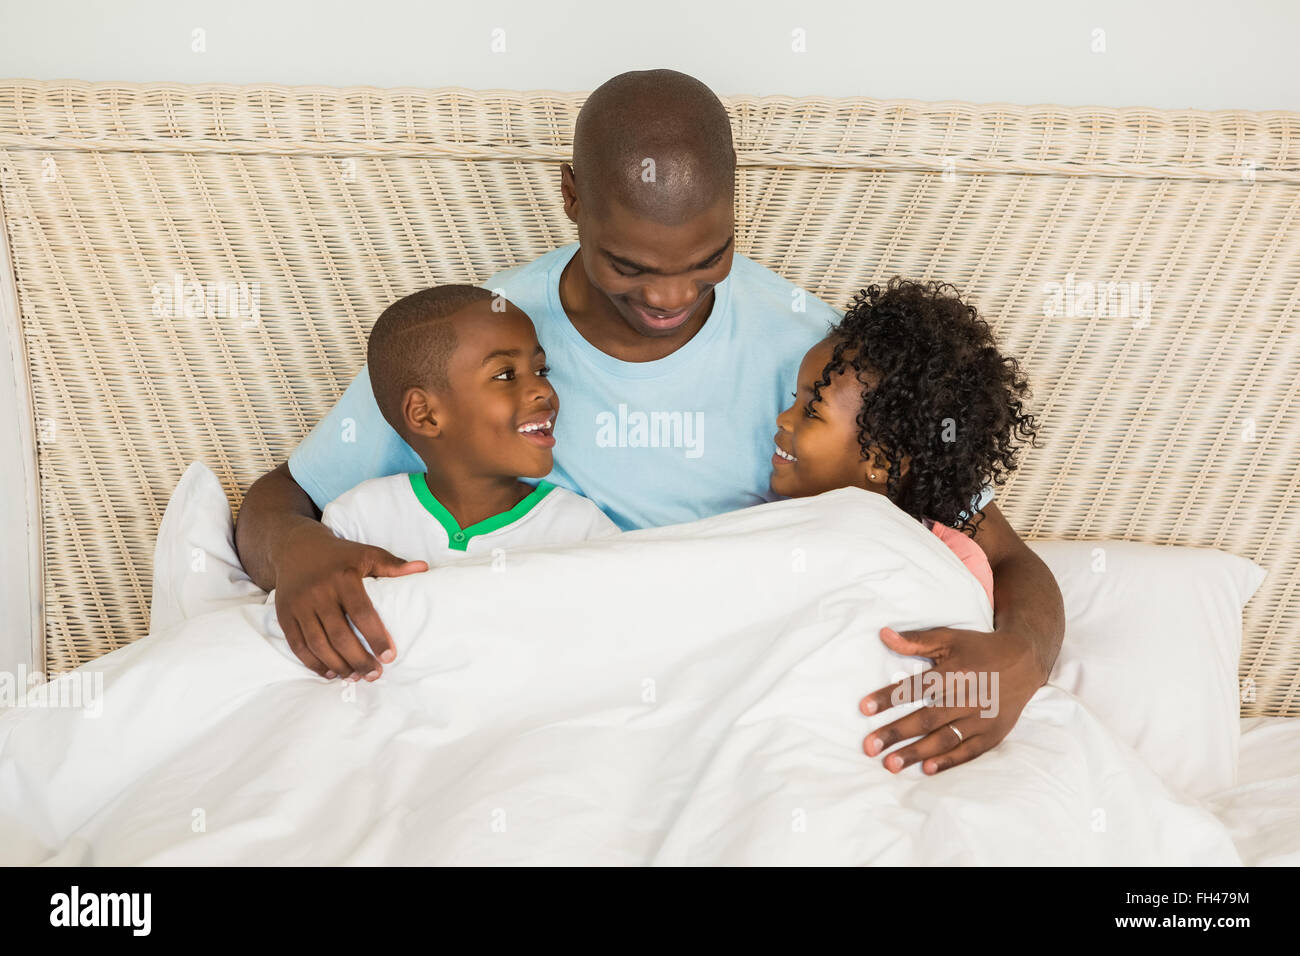 Smiling father in bed with children - Stock Image